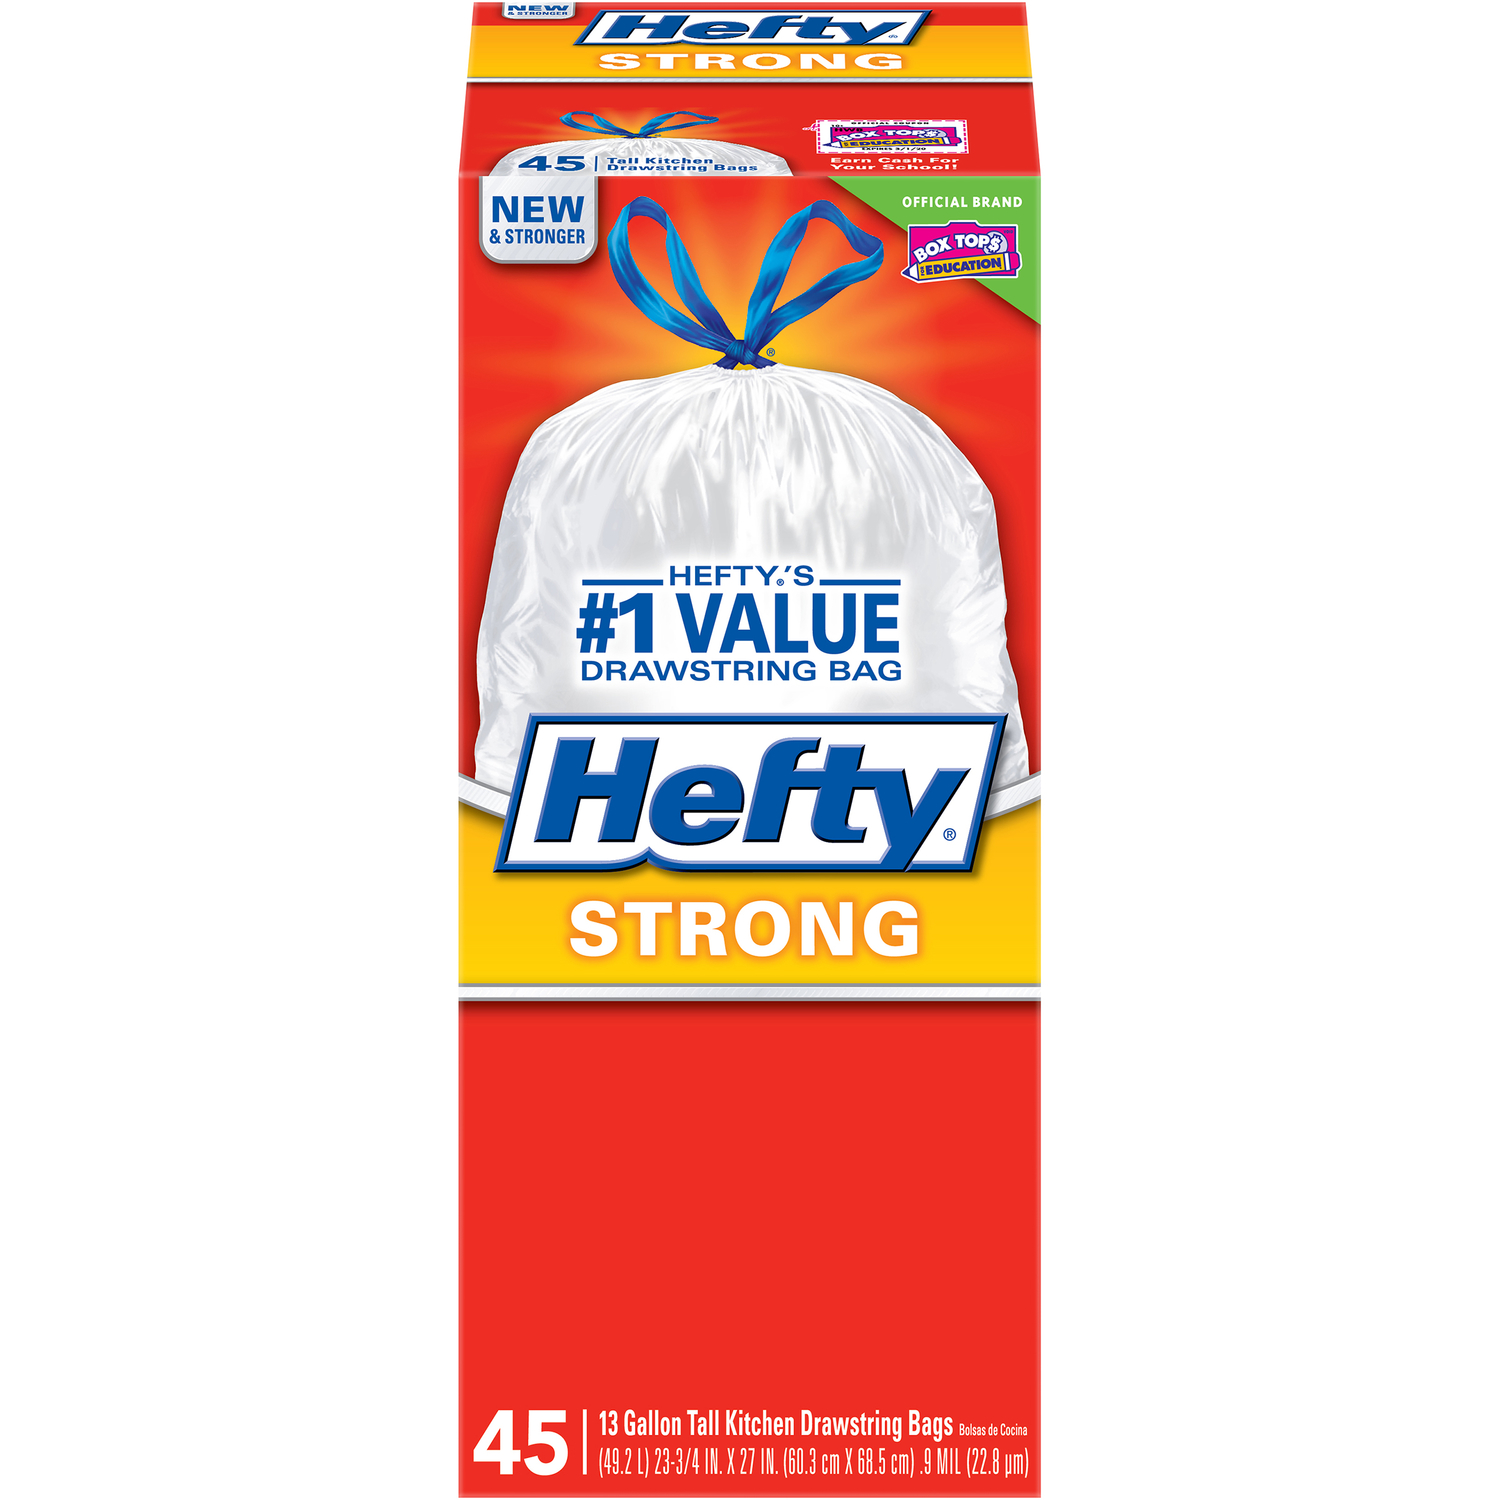 Hefty  Strong  13 gal. Kitchen Trash Bags  Drawstring  45 pk